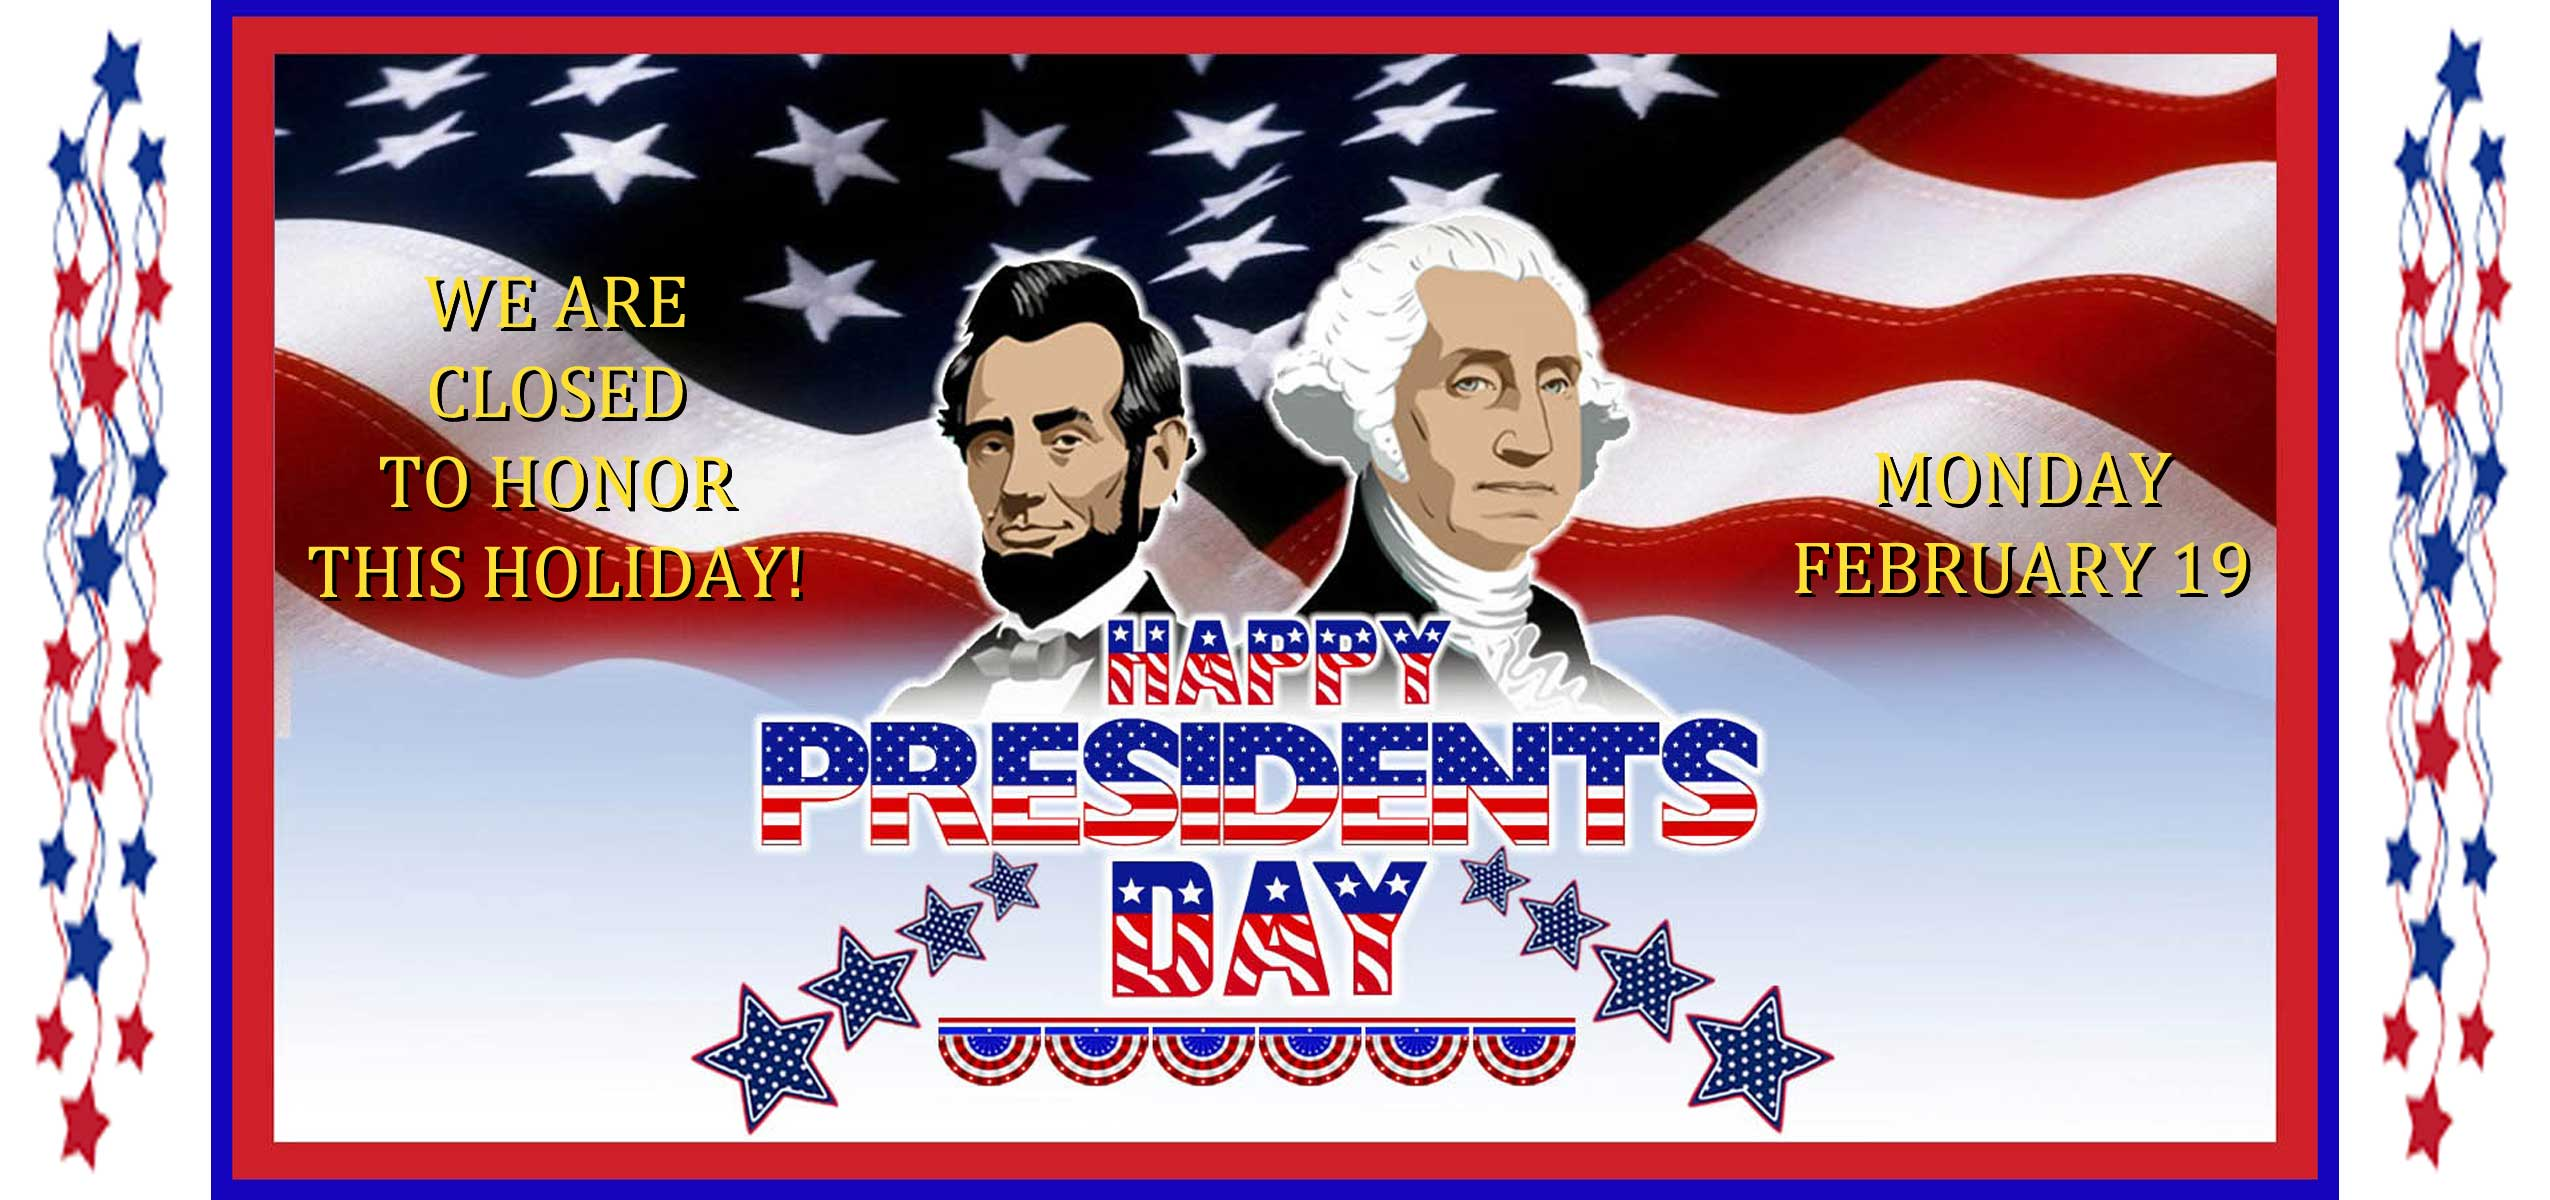 South Park Senior Center will be closed on Monday Februray 19, 2018 to honor the National Holiday.